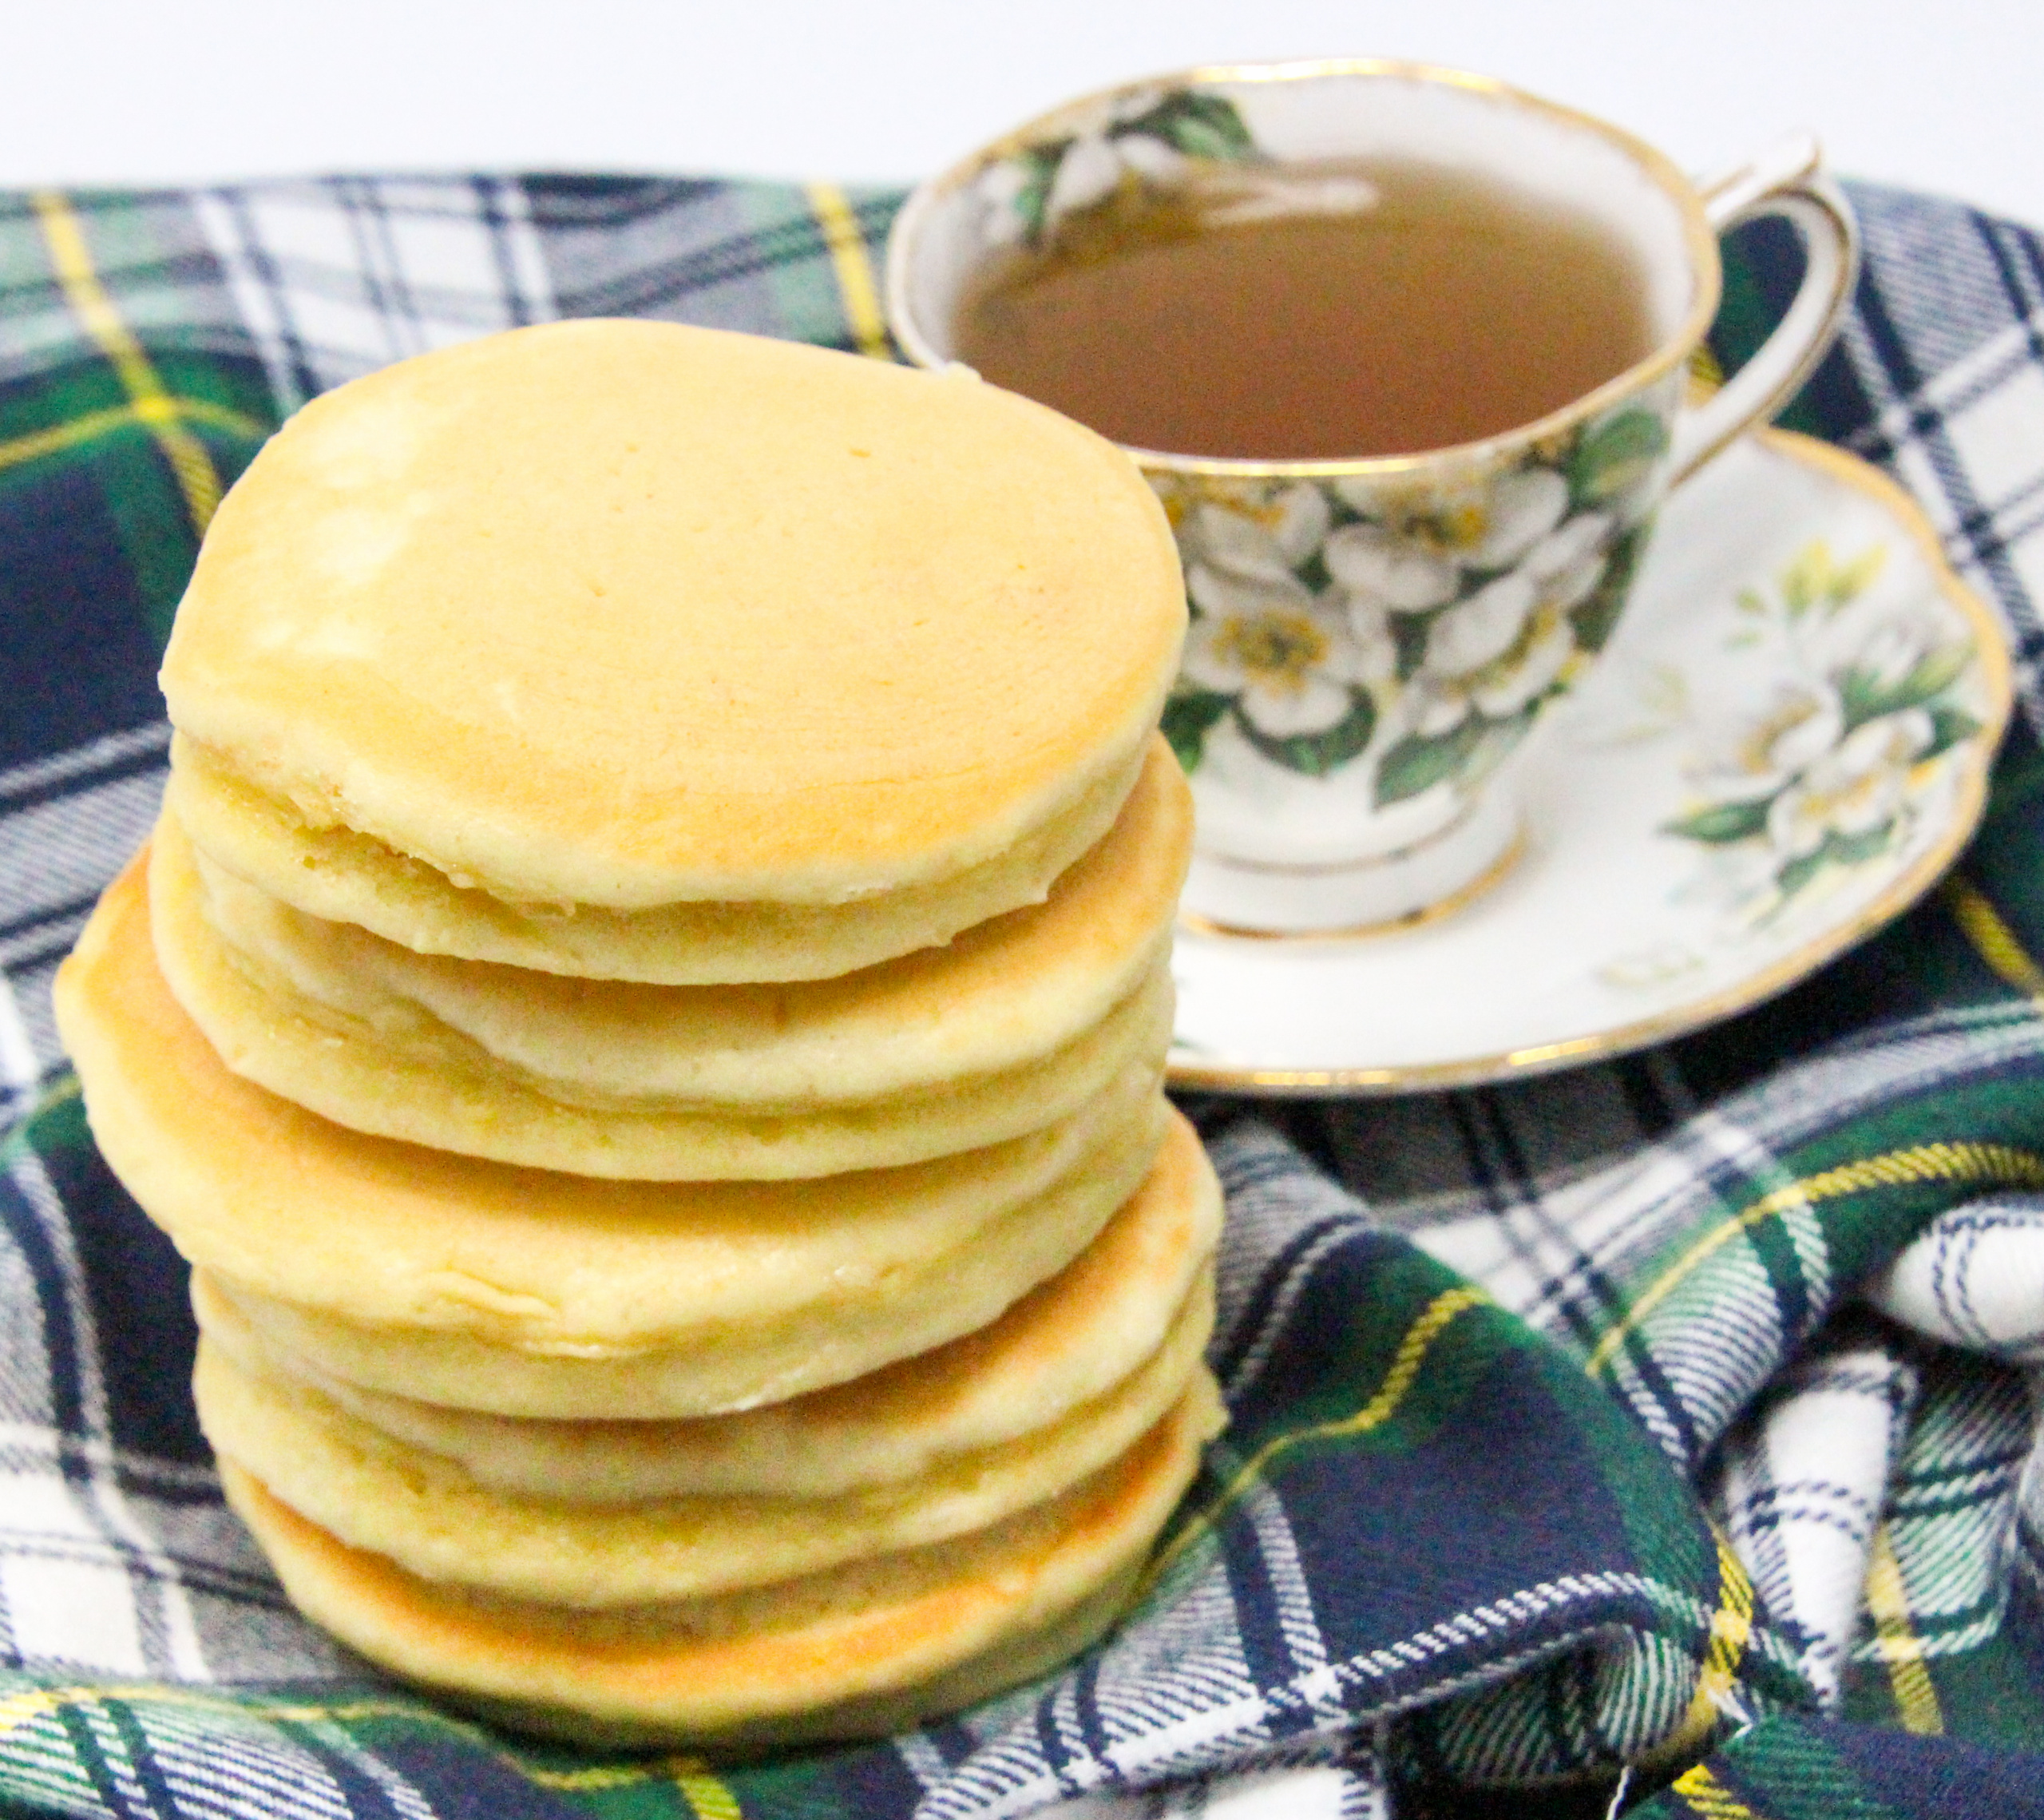 Scottish Pancakes AKA drop scones, combine a few simple ingredients to create a delicious breakfast! Sweeter than regular pancakes, these can be eaten alone with butter or topped with your favorite preserves or syrup. Recipe shared with permission granted by Paige Shelton, author of DEADLY EDITIONS.